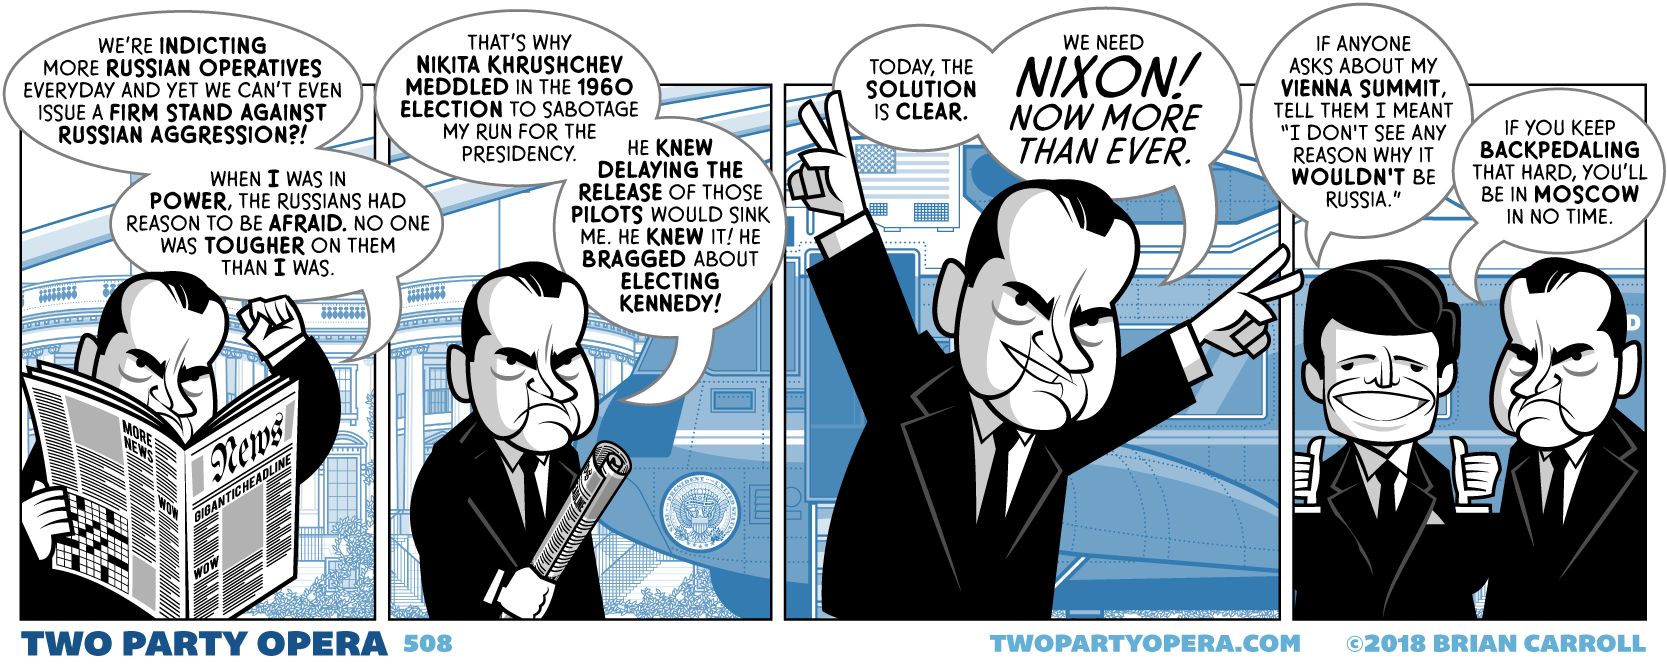 Nixon Now More Than Ever